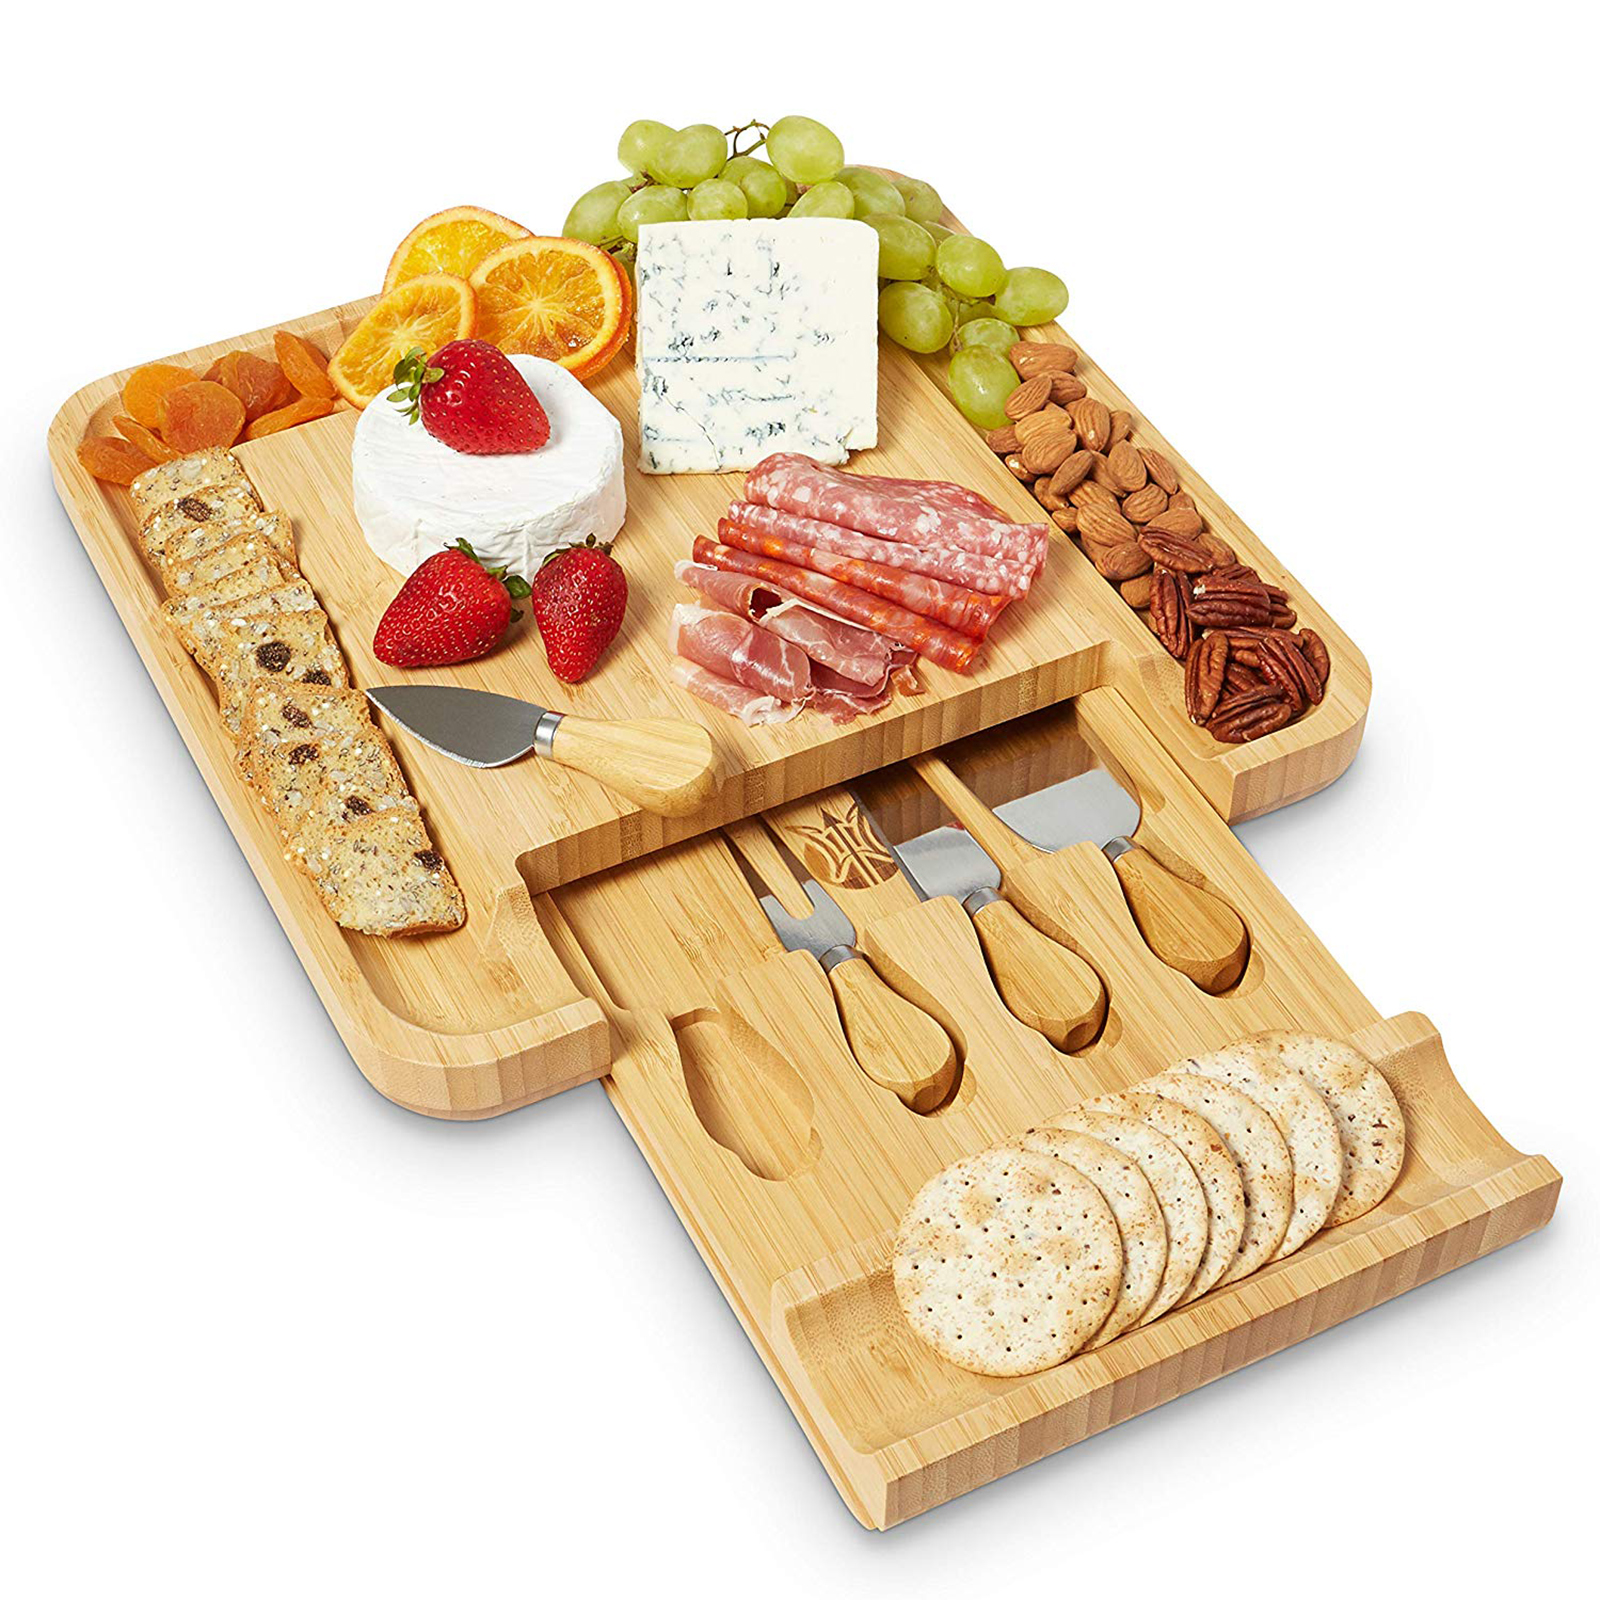 Wood Bamboo Cheese Cutter Knife Slicer Sets Kit Kitchen Board Charcuterie Platter & Serving Tray For Wine Crackers Useful Tools